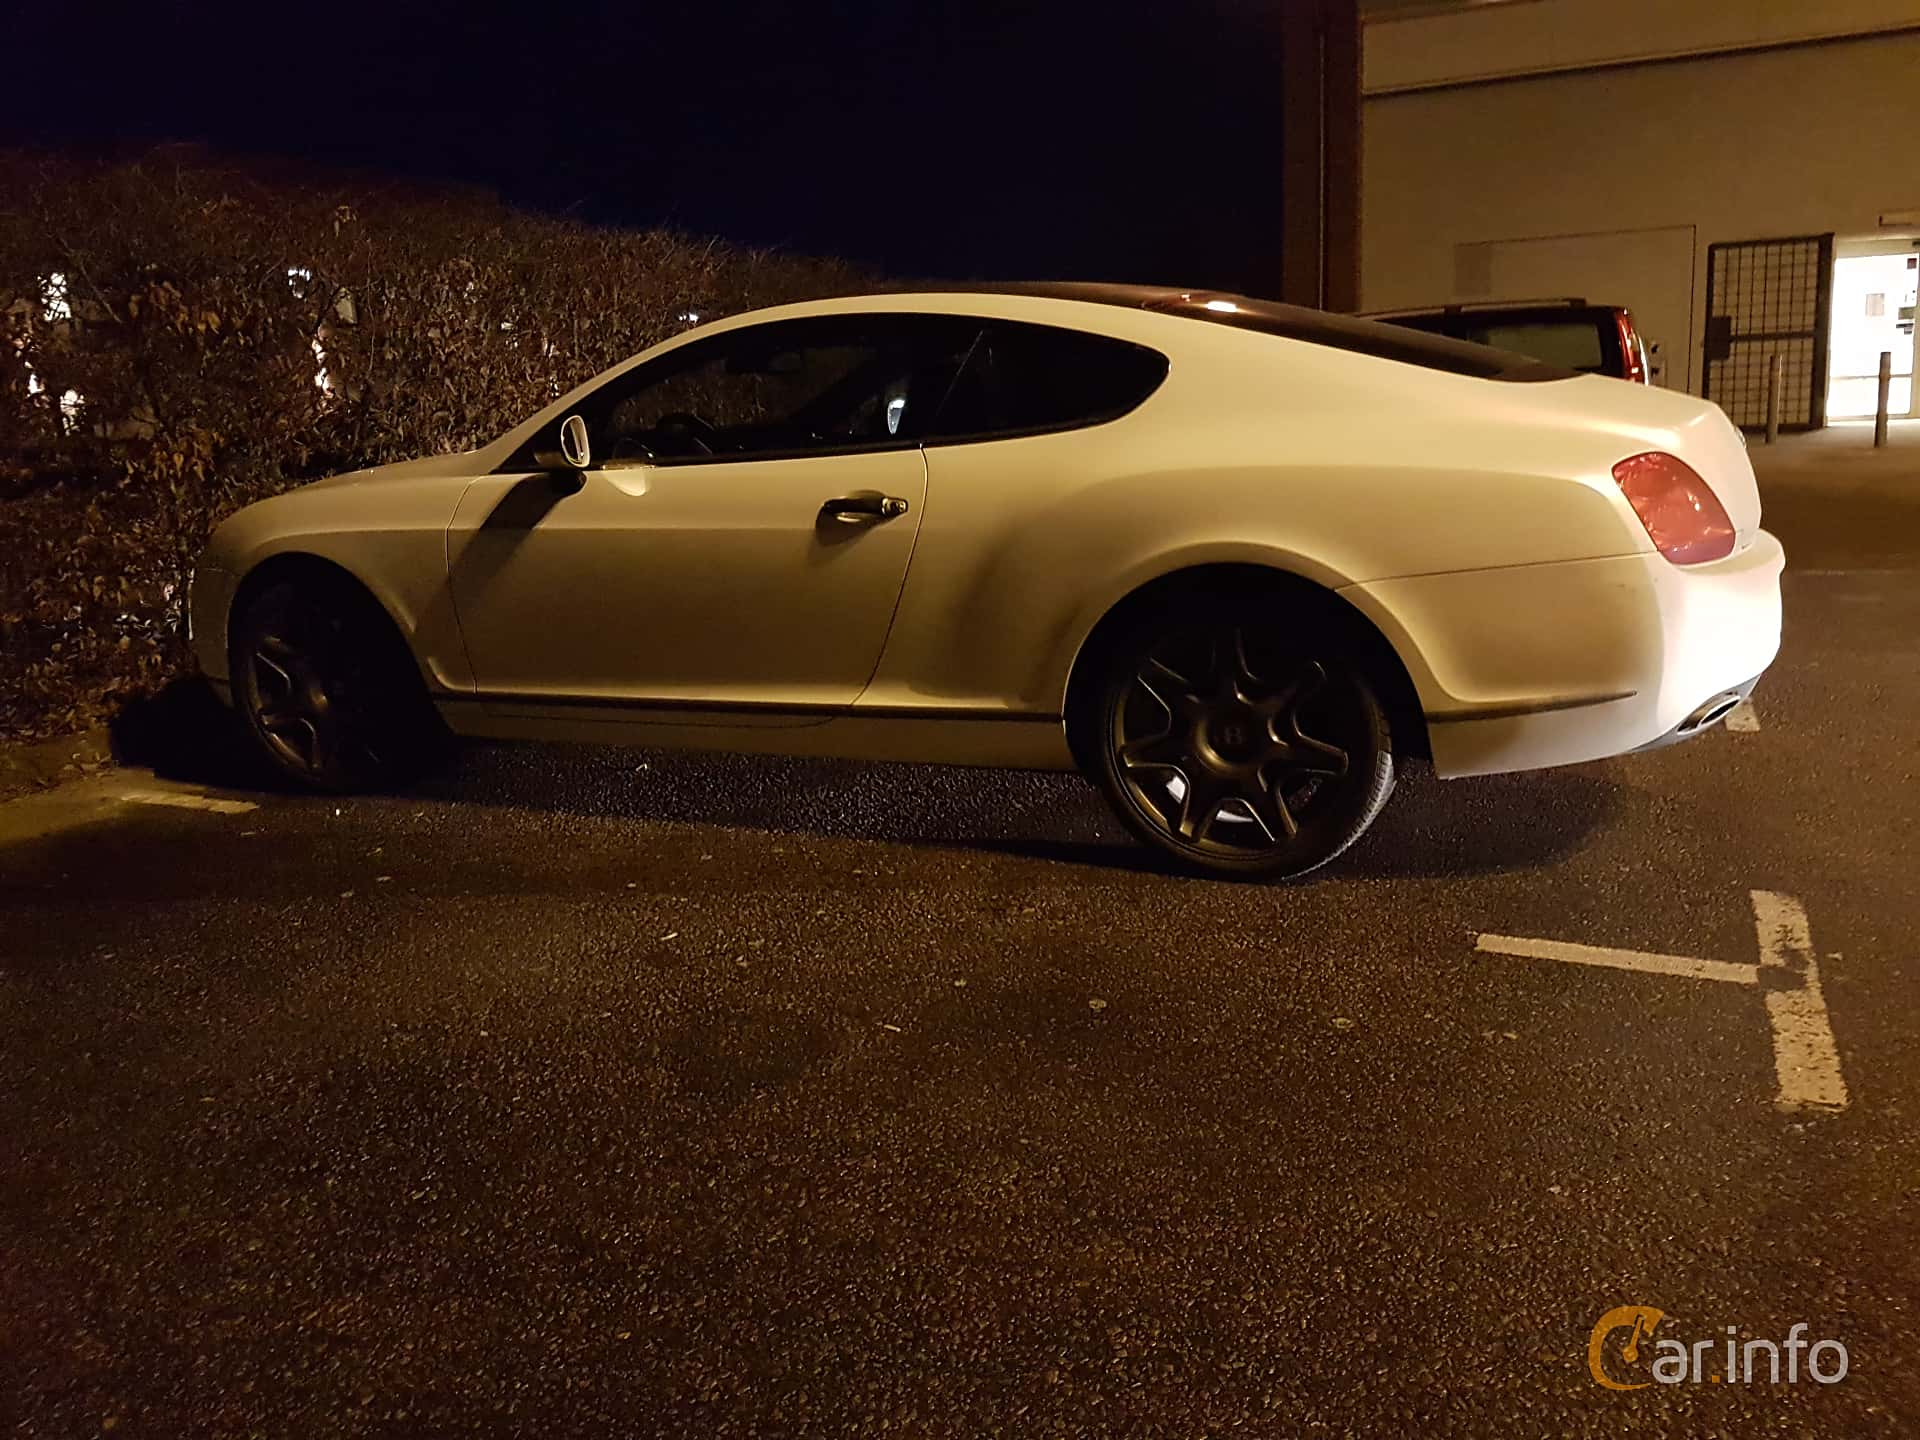 Bentley Continental GT 6.0 W12 Automatic, 560hp, 2008